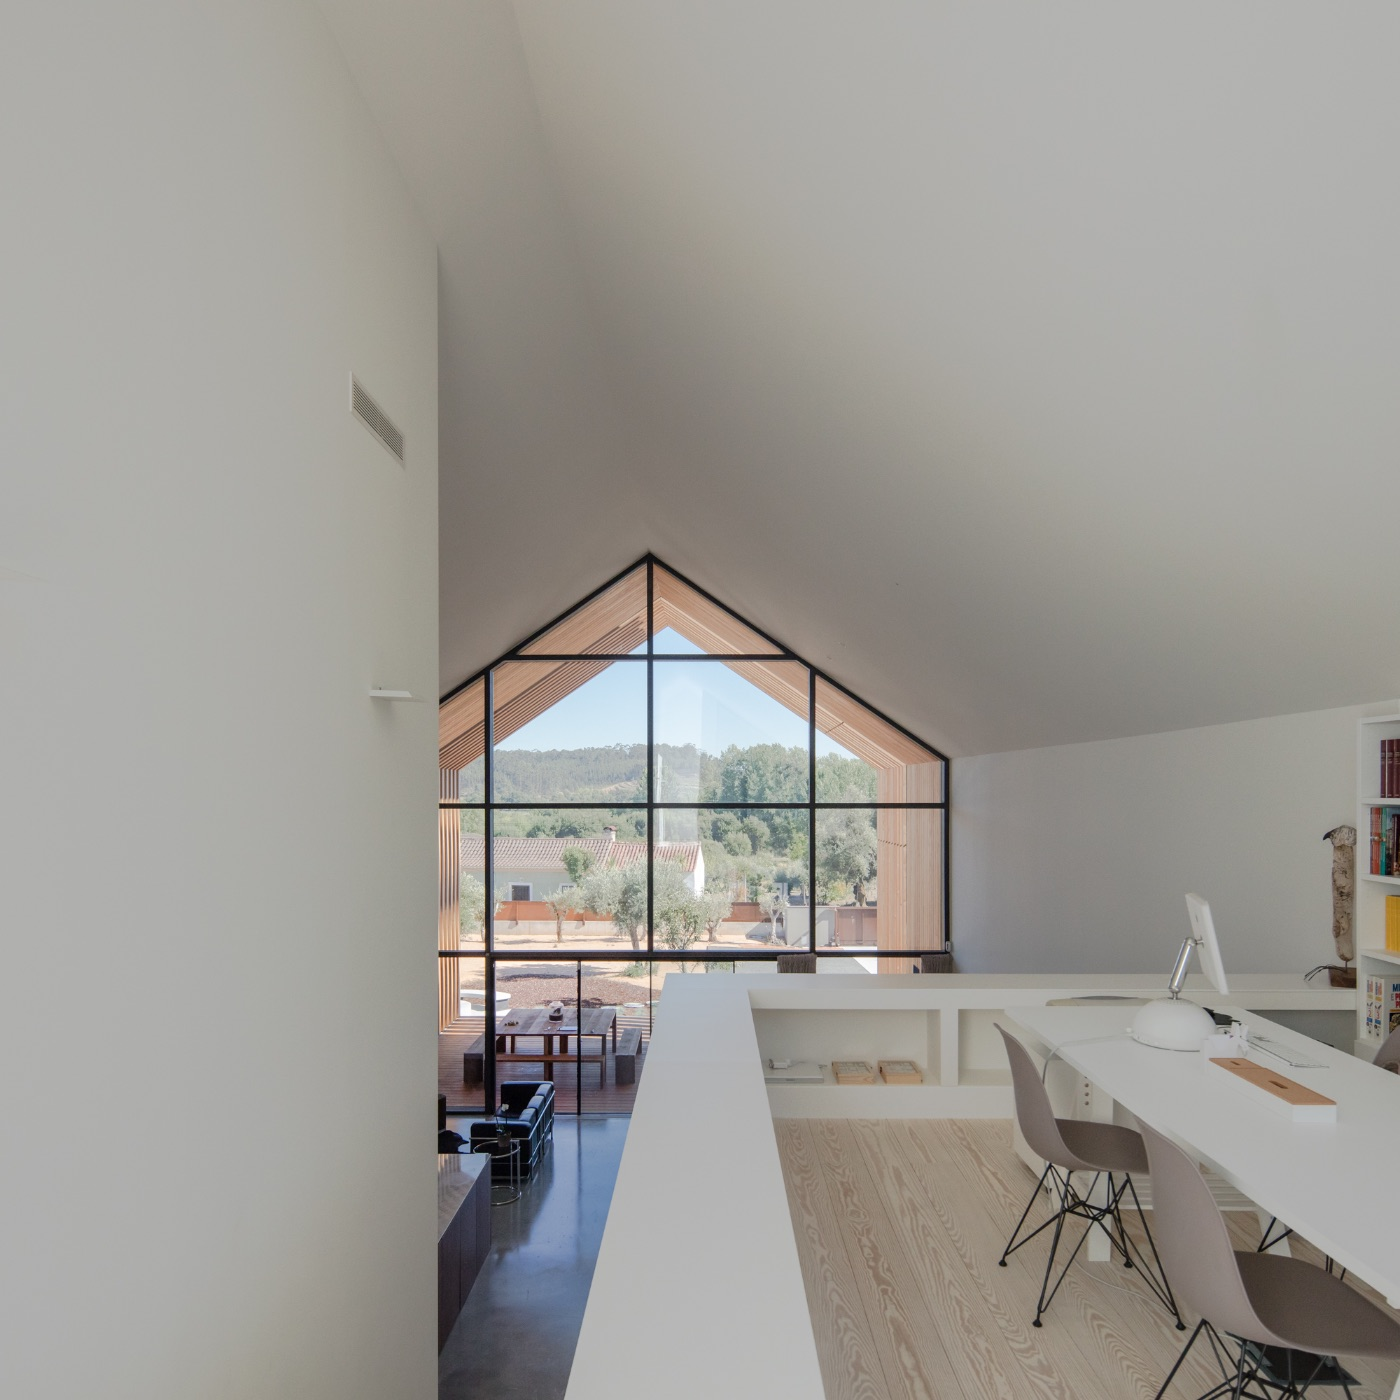 19_House in Ourem_Filipe Saraiva_Inspirationist